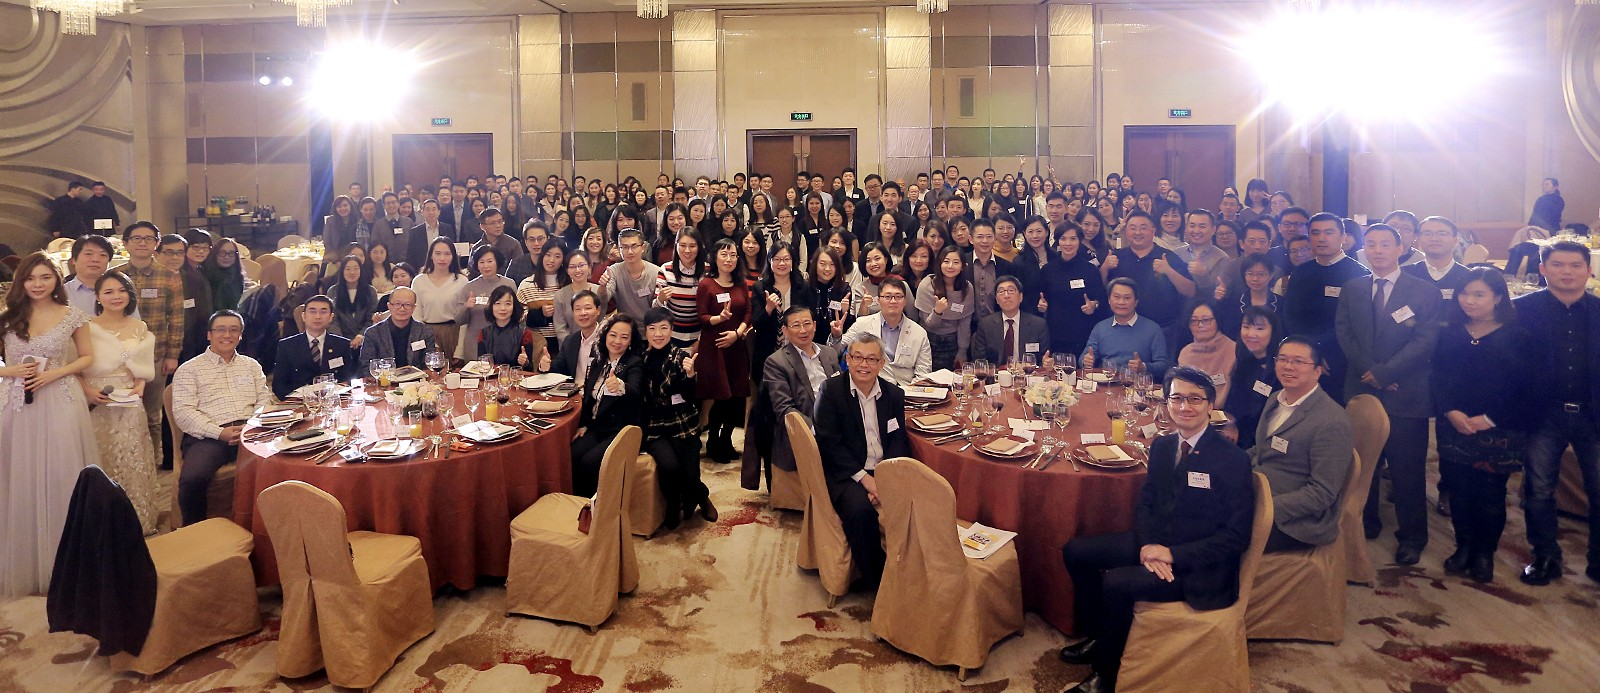 A record number of participants attend the alumni dinner in Shanghai.